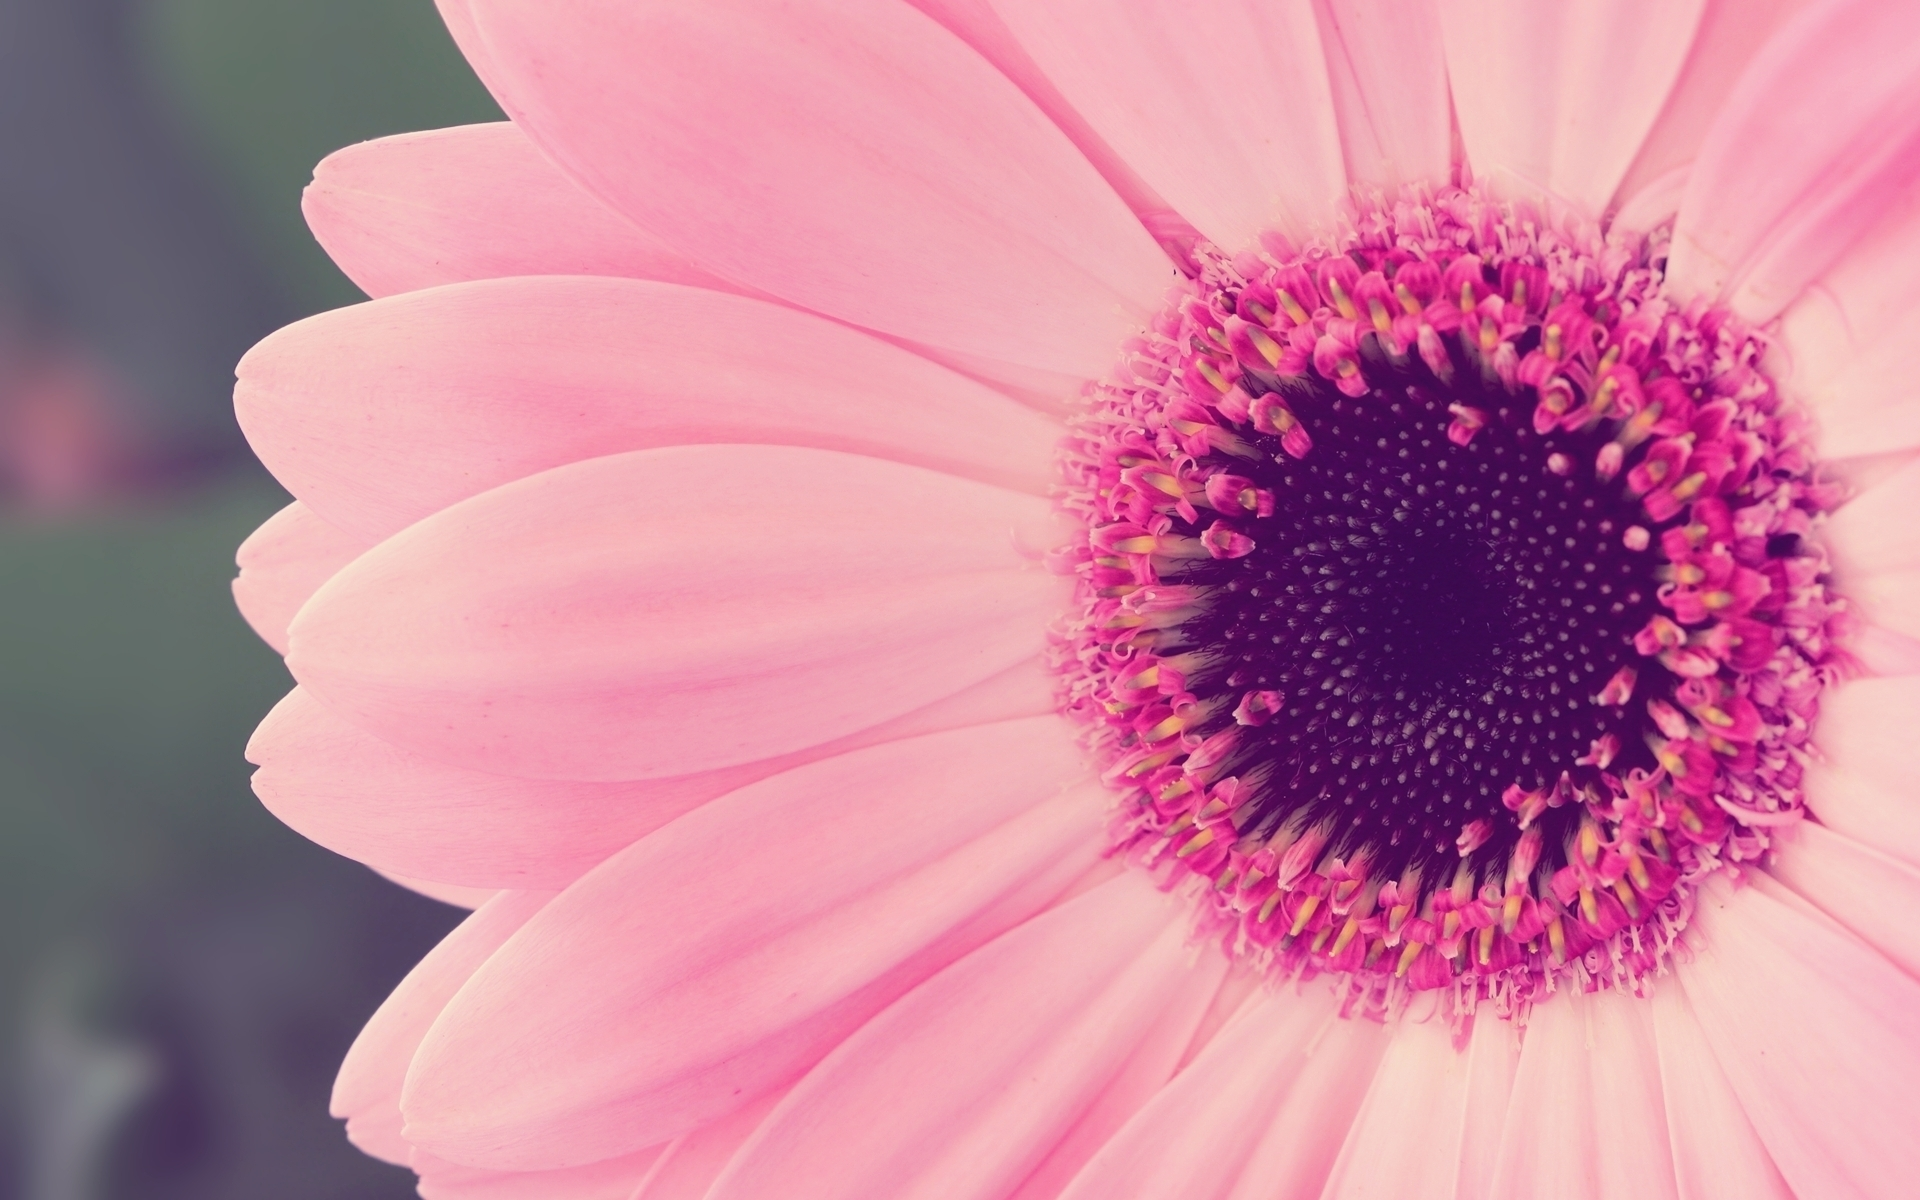 cool pink flower backgrounds #2465 - hdwarena